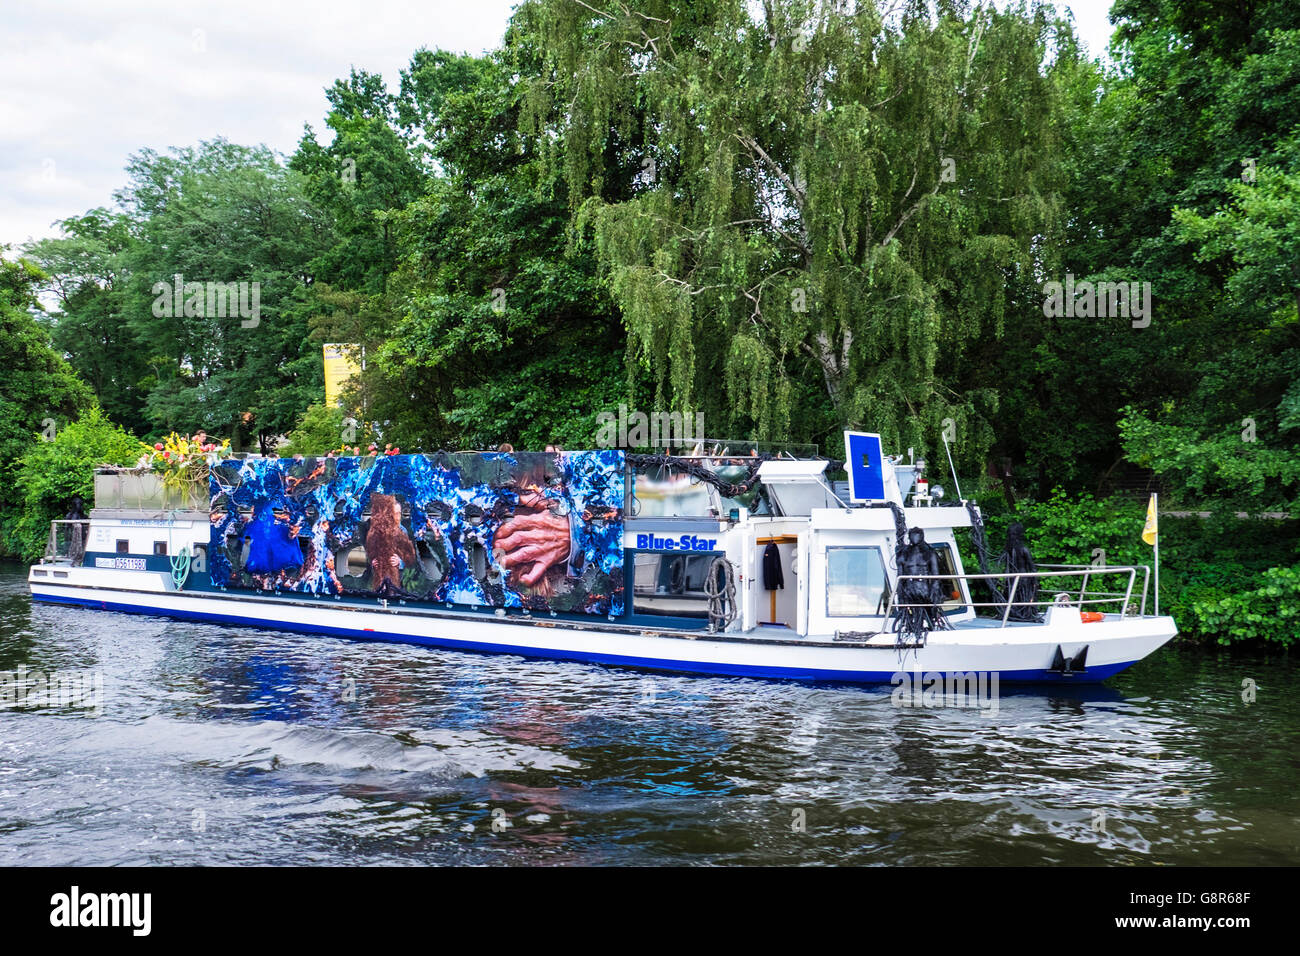 'Bue Star' Reederei Riedel river boat for river and canal trips with decorative artwork on exterior, River - Stock Image